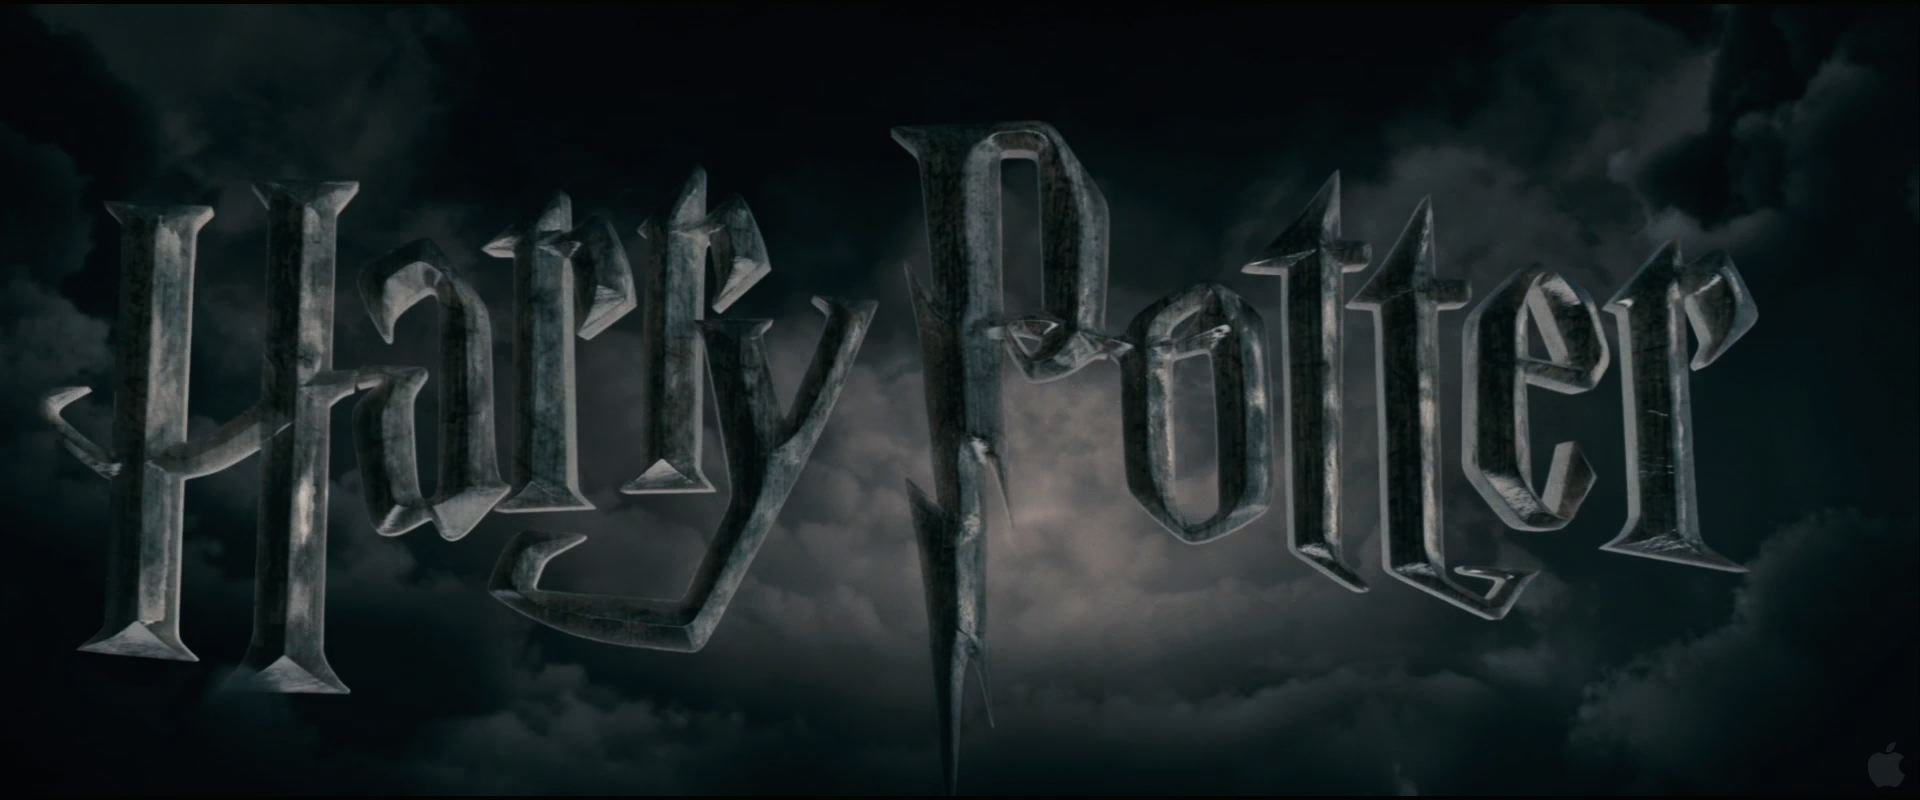 harry-potter-logo-wallpaper - intercom magazine